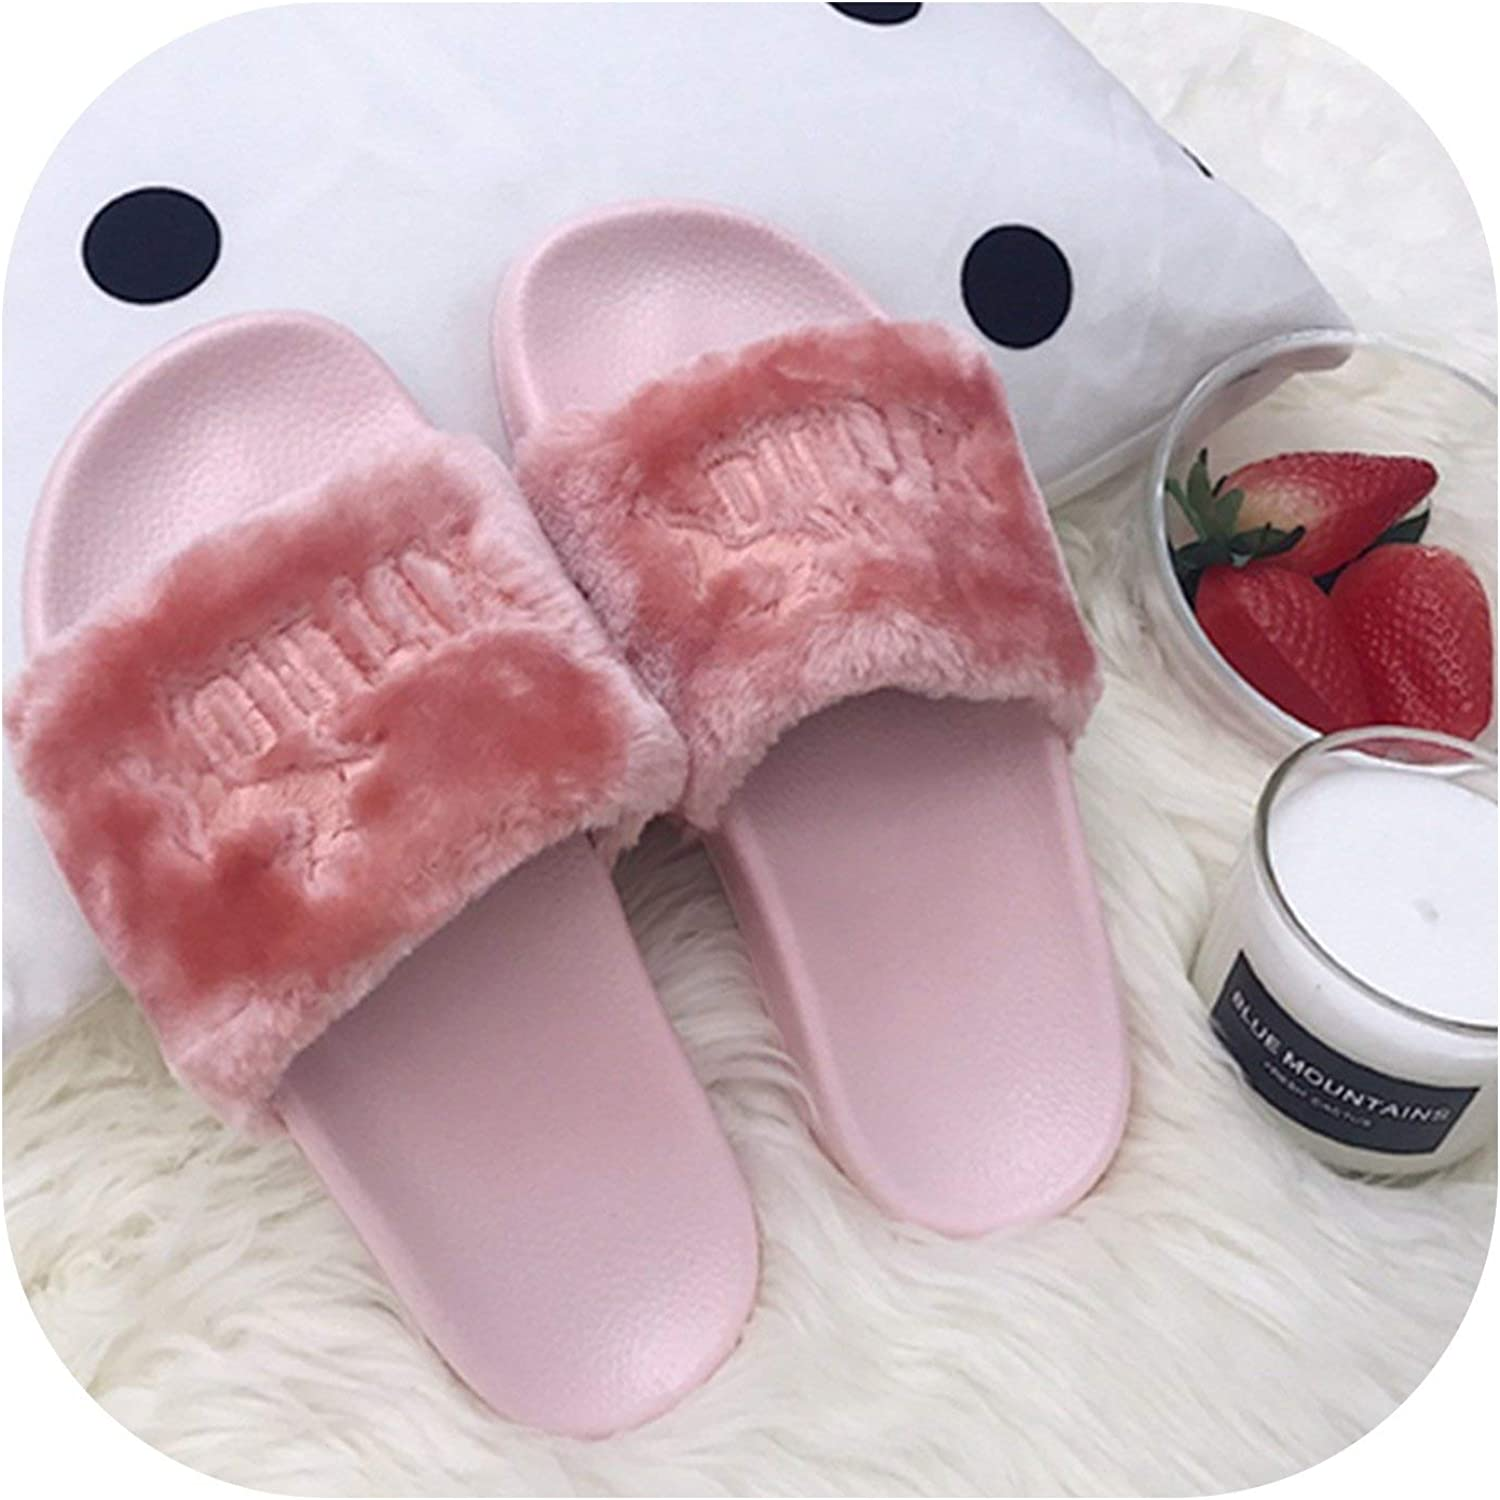 April With You Summer Solid Outdoor Slippers Fluffy Slippers Women Plush Letter shoes Warm Open Toe Solid Non-Slip